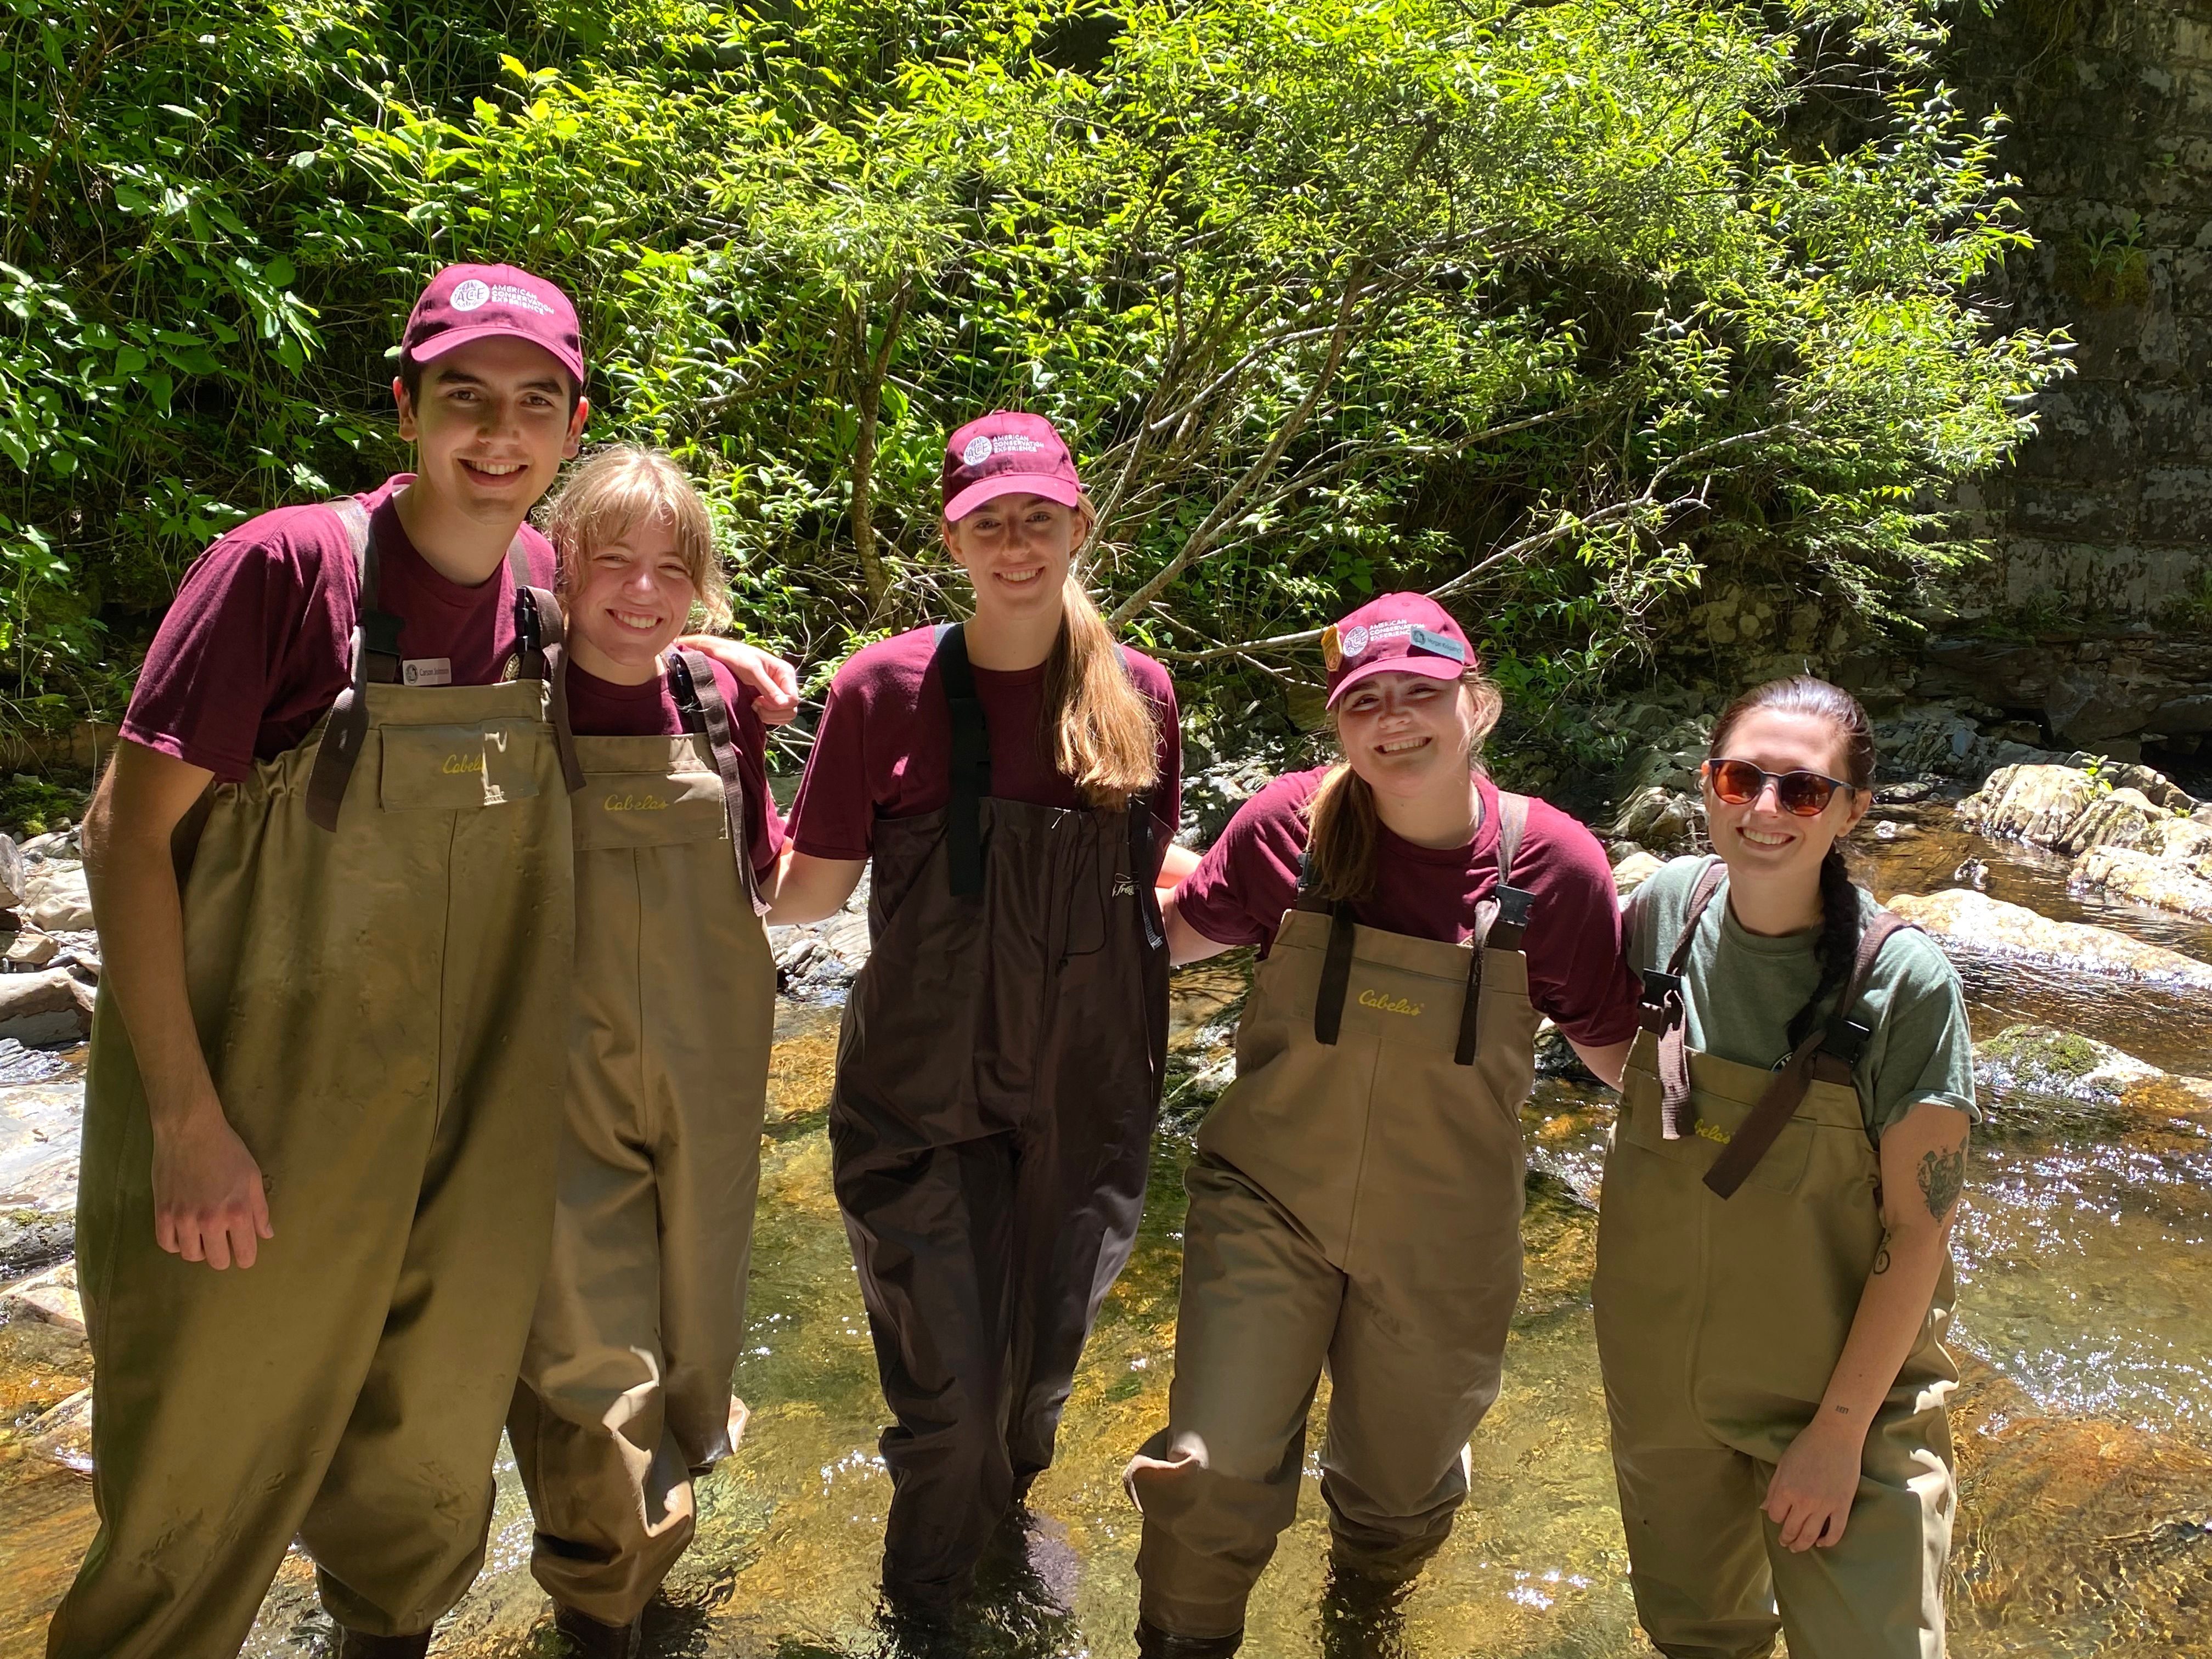 Experiences in the Smokies often help summer interns like these to better determine what type of career they want to pursue when they head off to college in the fall. From left to right: Carson Johnson, Kaylie Hallcox, Grace Pepperman, Morgan Kirkpatrick, and Becca Foster. Image courtesy of NPS.